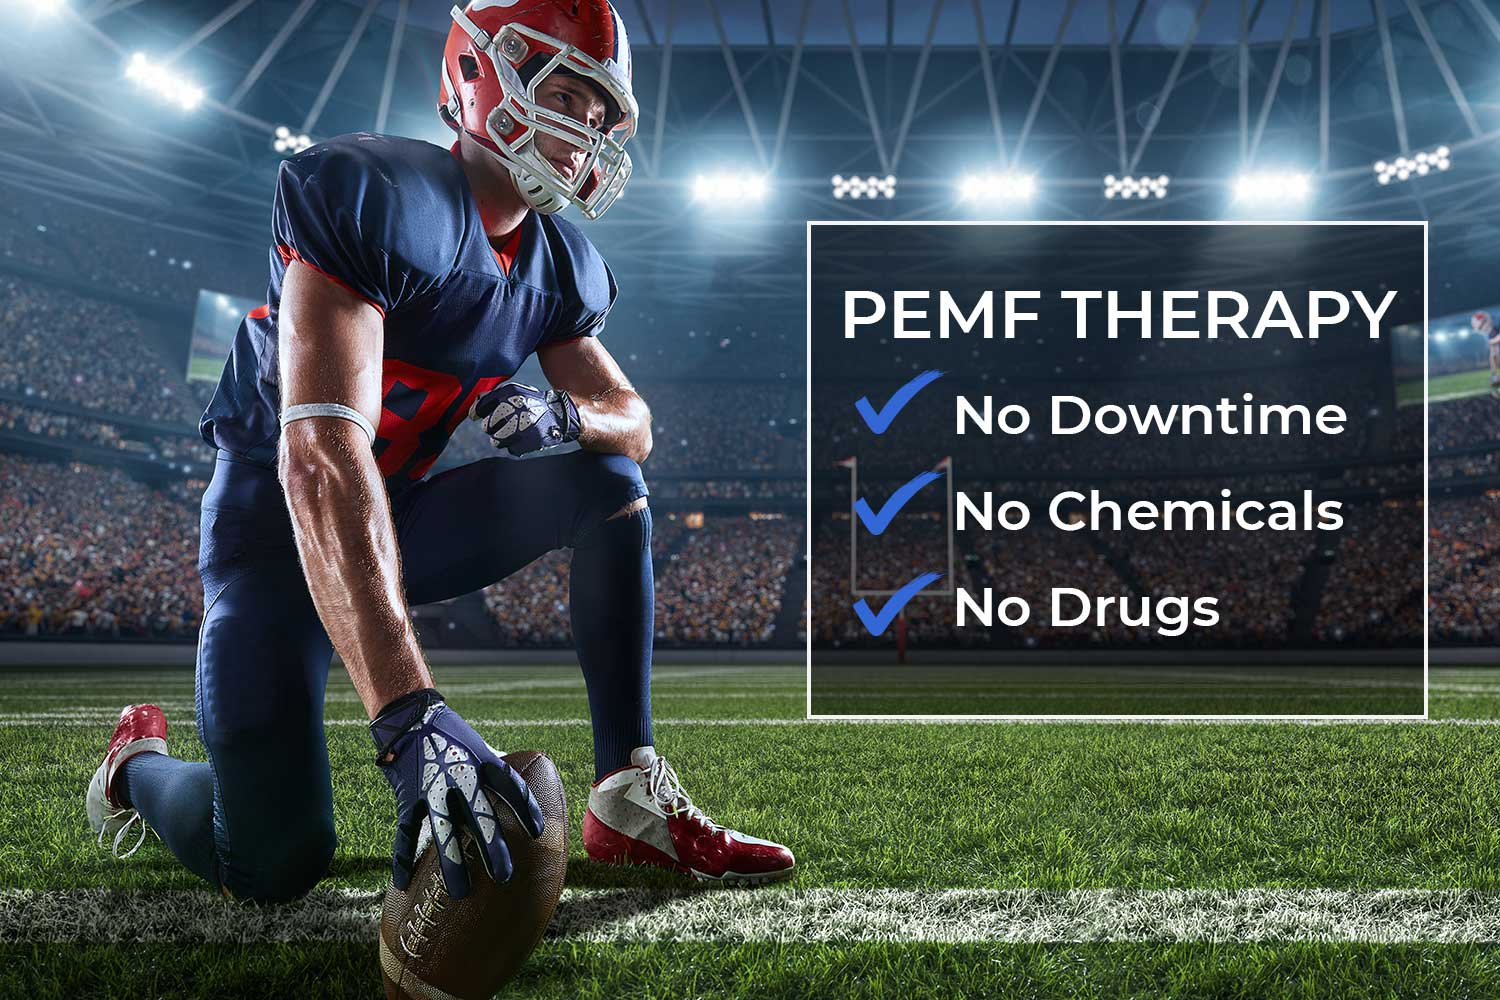 PEMF therapy - no downtime, no chemicals, no drugs